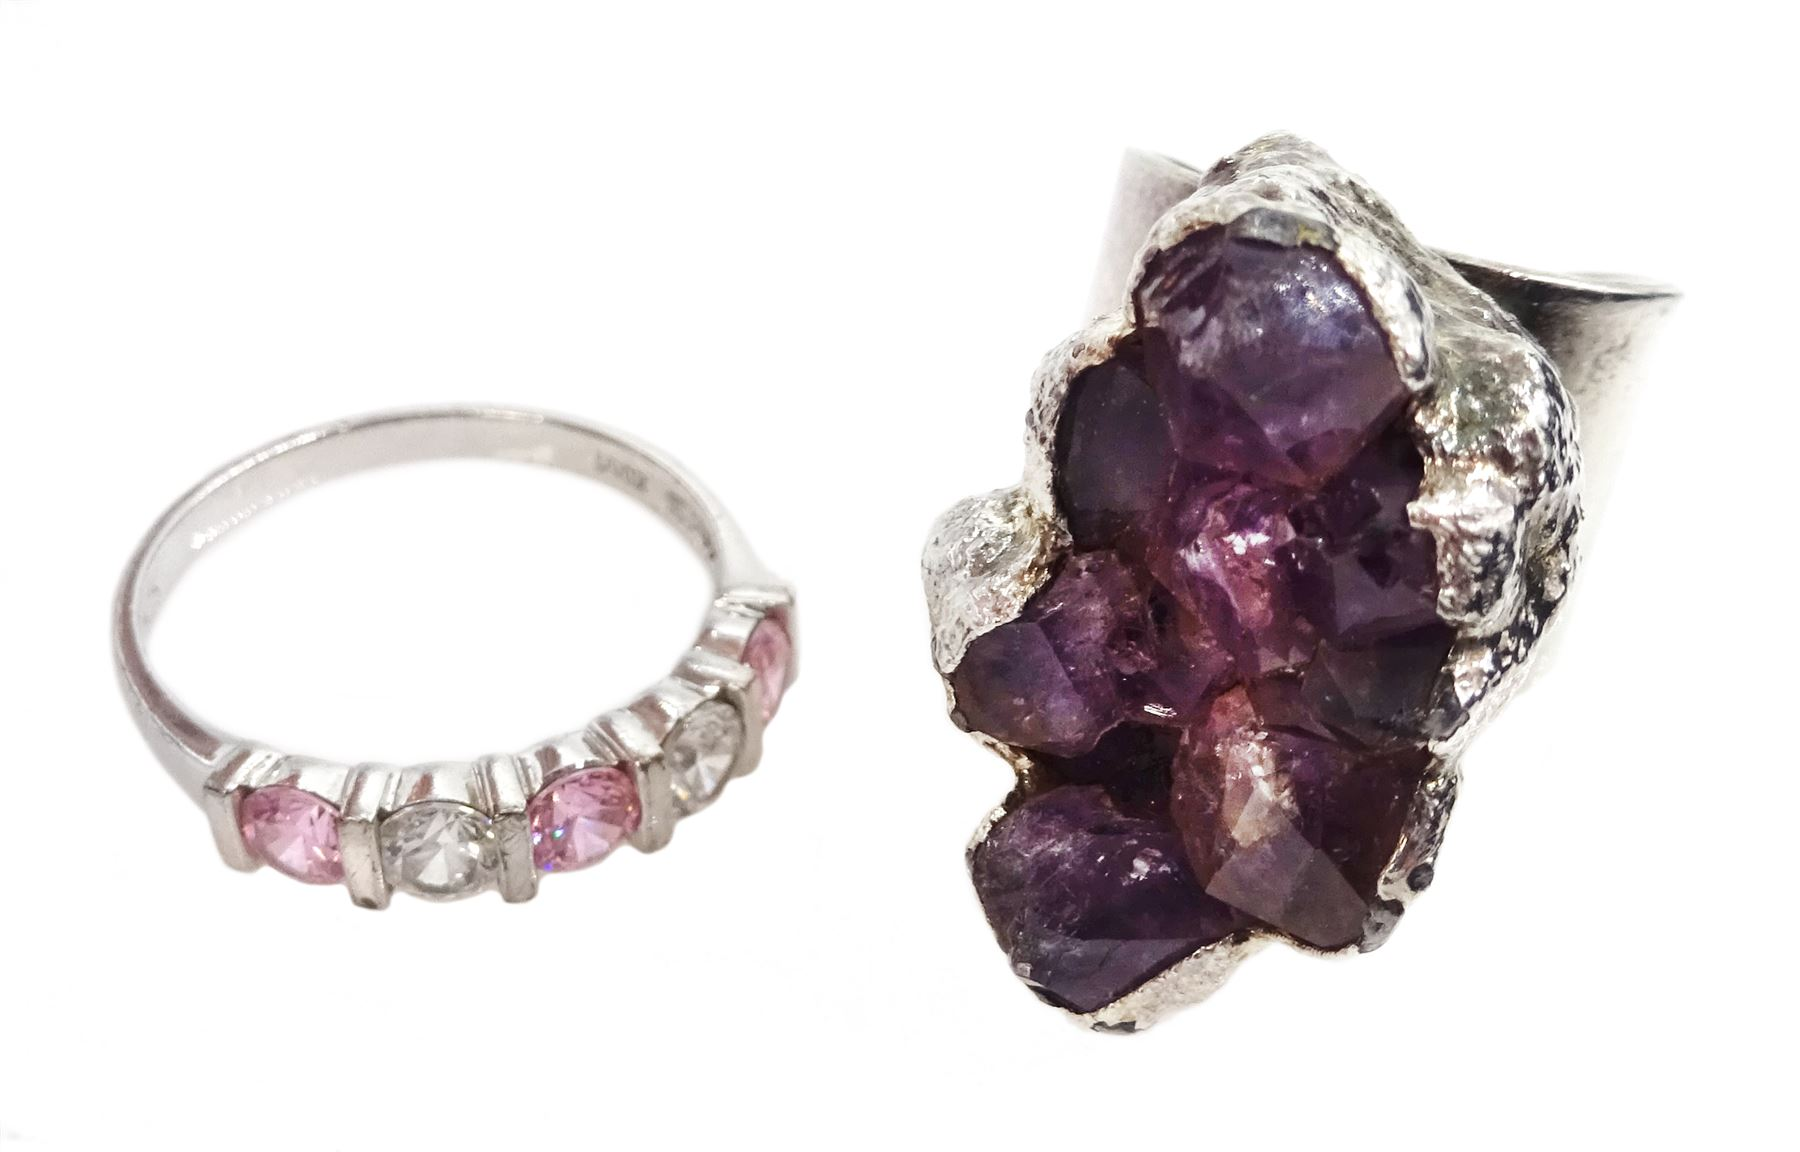 Modernist amethyst crystal ring by Jacob Hull For Buch And Deichmann Denmark - Image 2 of 2